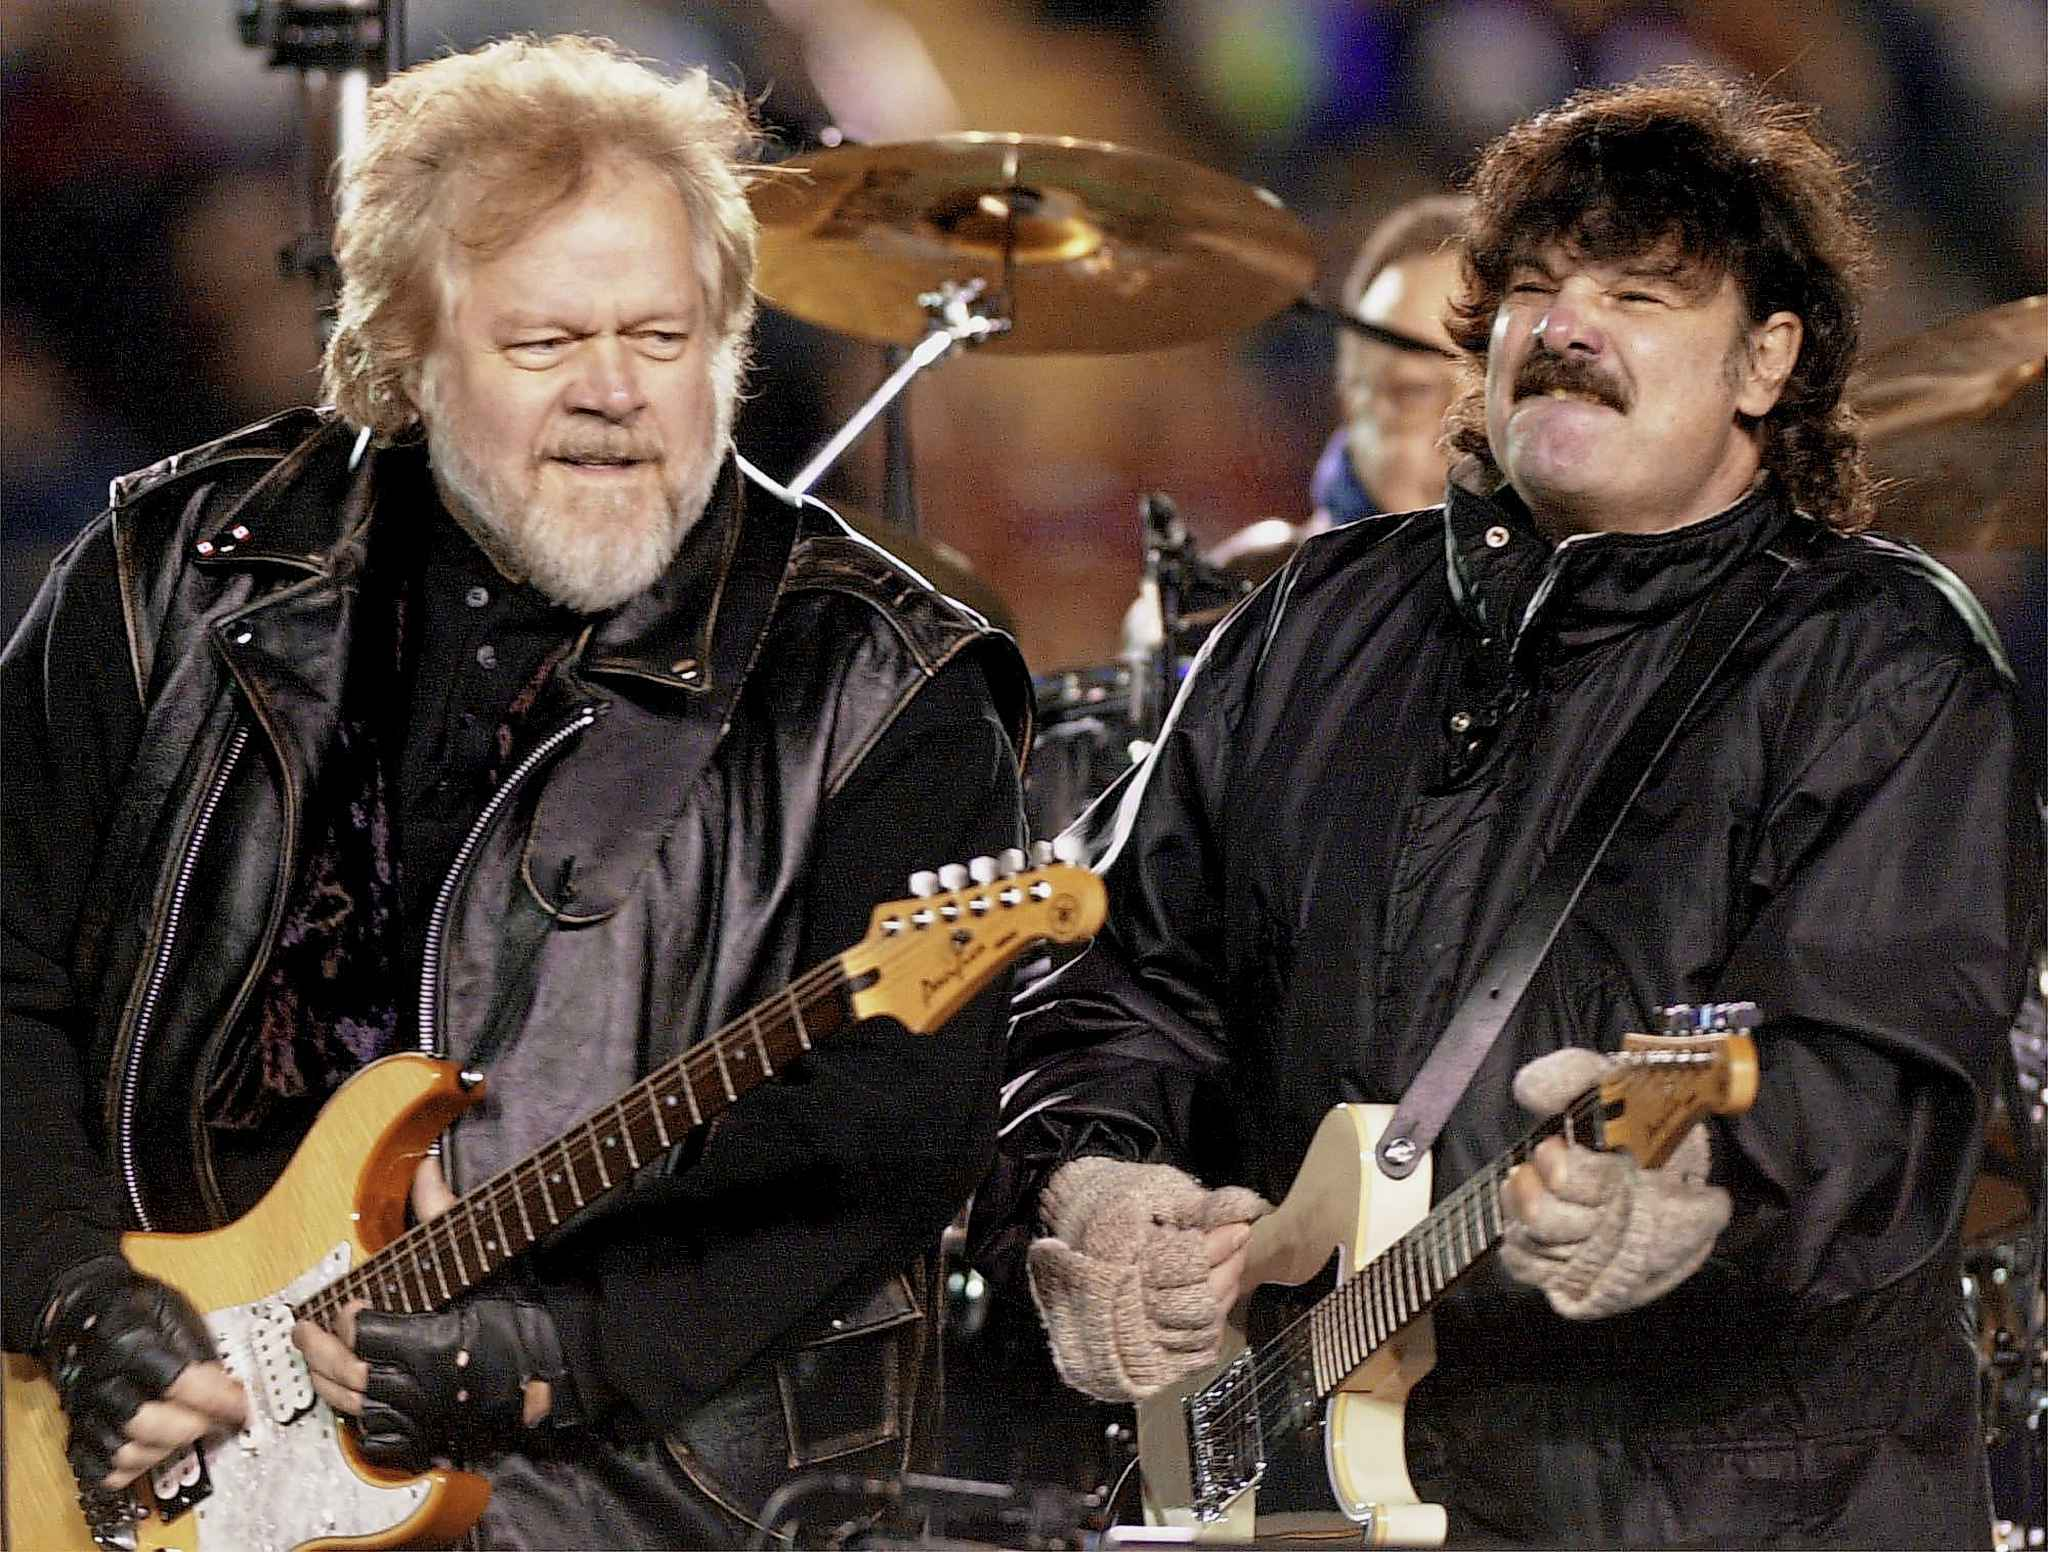 Randy Bachman and Burton Cummings perform during the halftime show at the 88th Grey Cup game in Calgary on November 26, 2000. (Aaron Harris / The Canadian Press files)